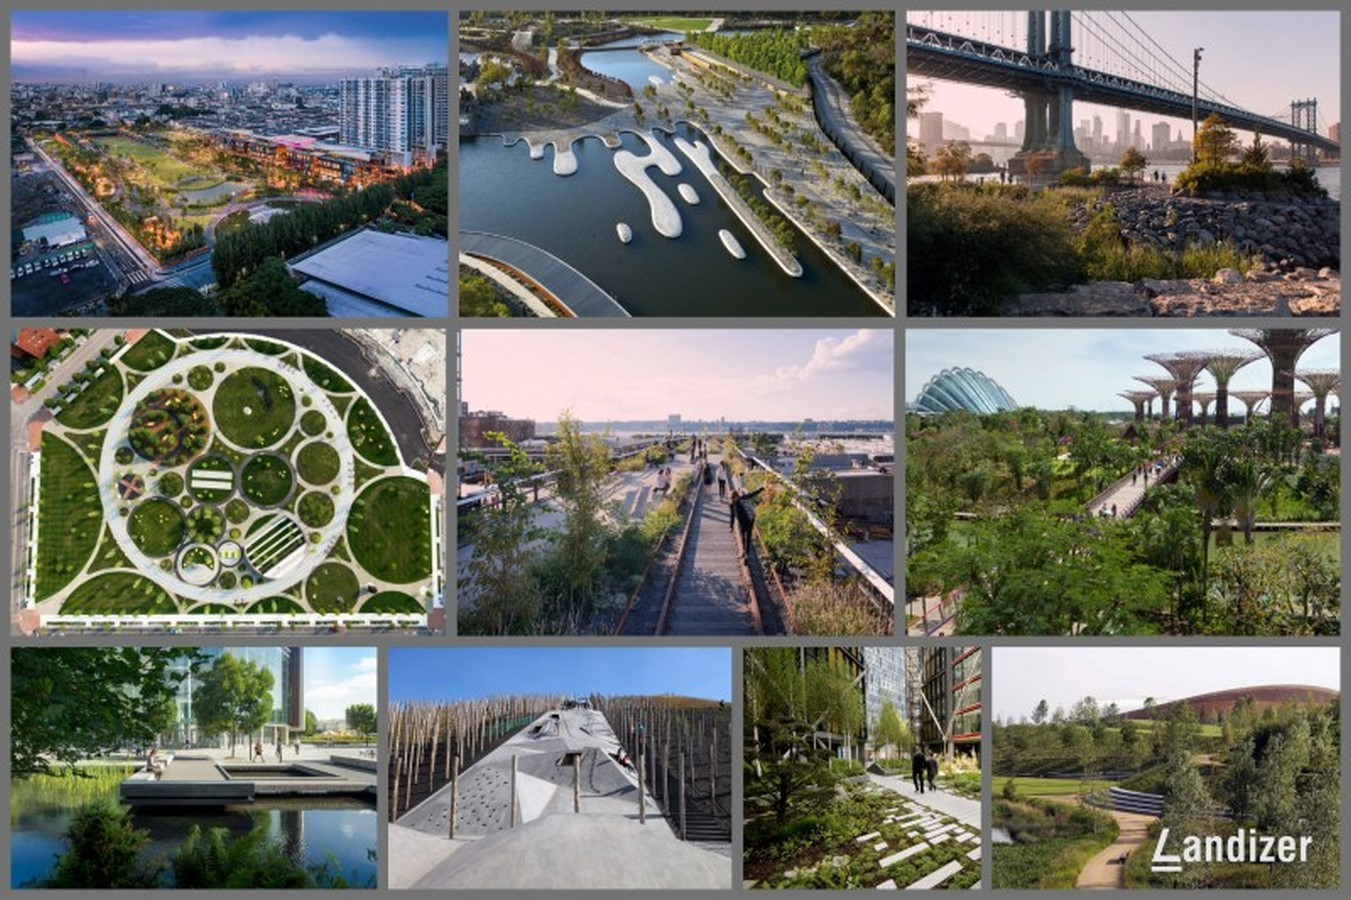 Landscape architecture doesn't have a variant scope of work